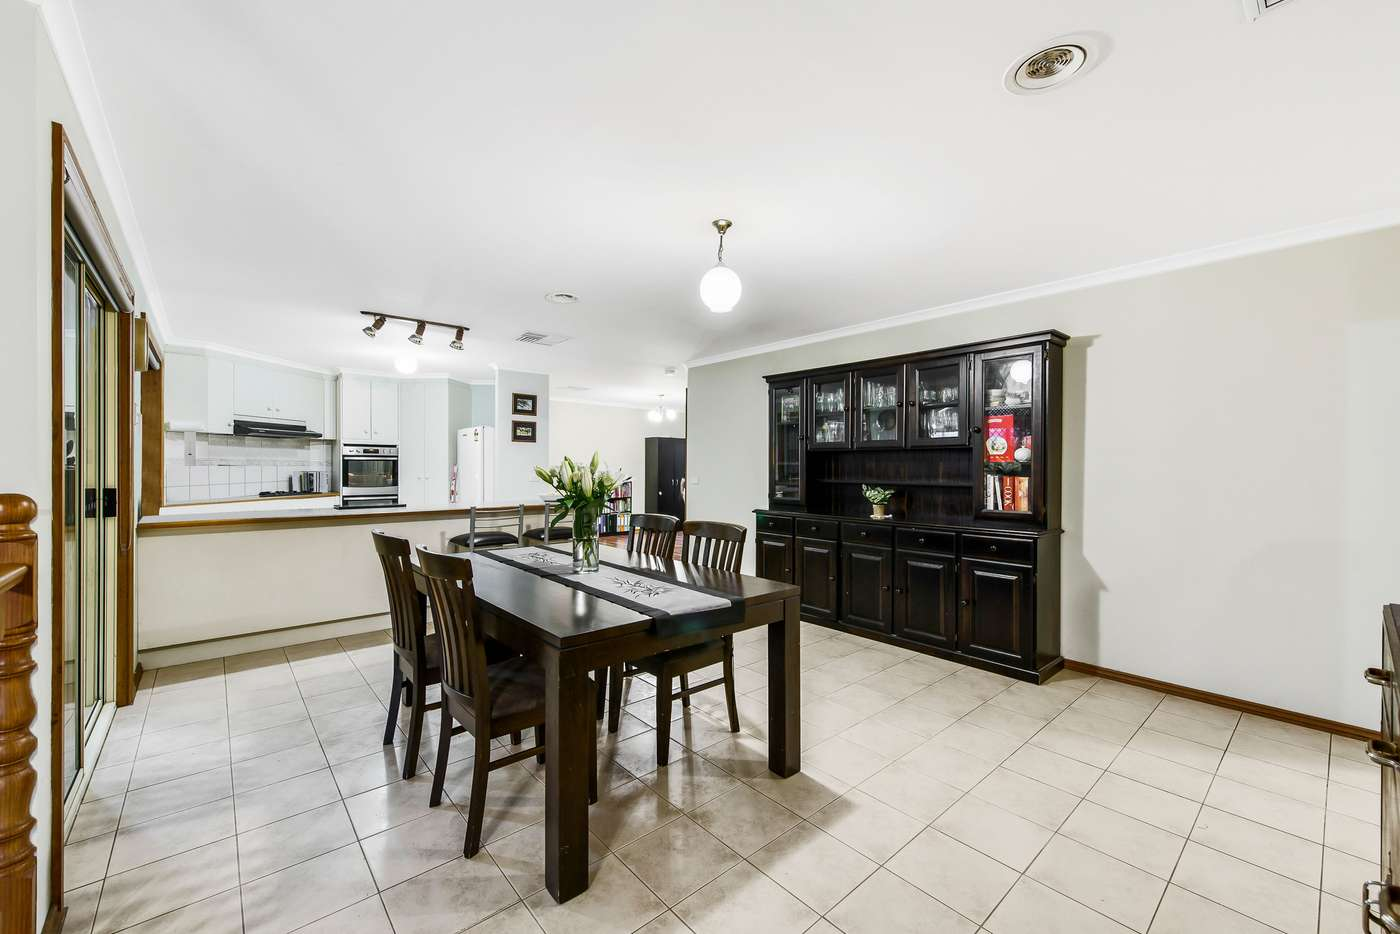 Seventh view of Homely house listing, 9 Sundew Close, Hillside VIC 3037